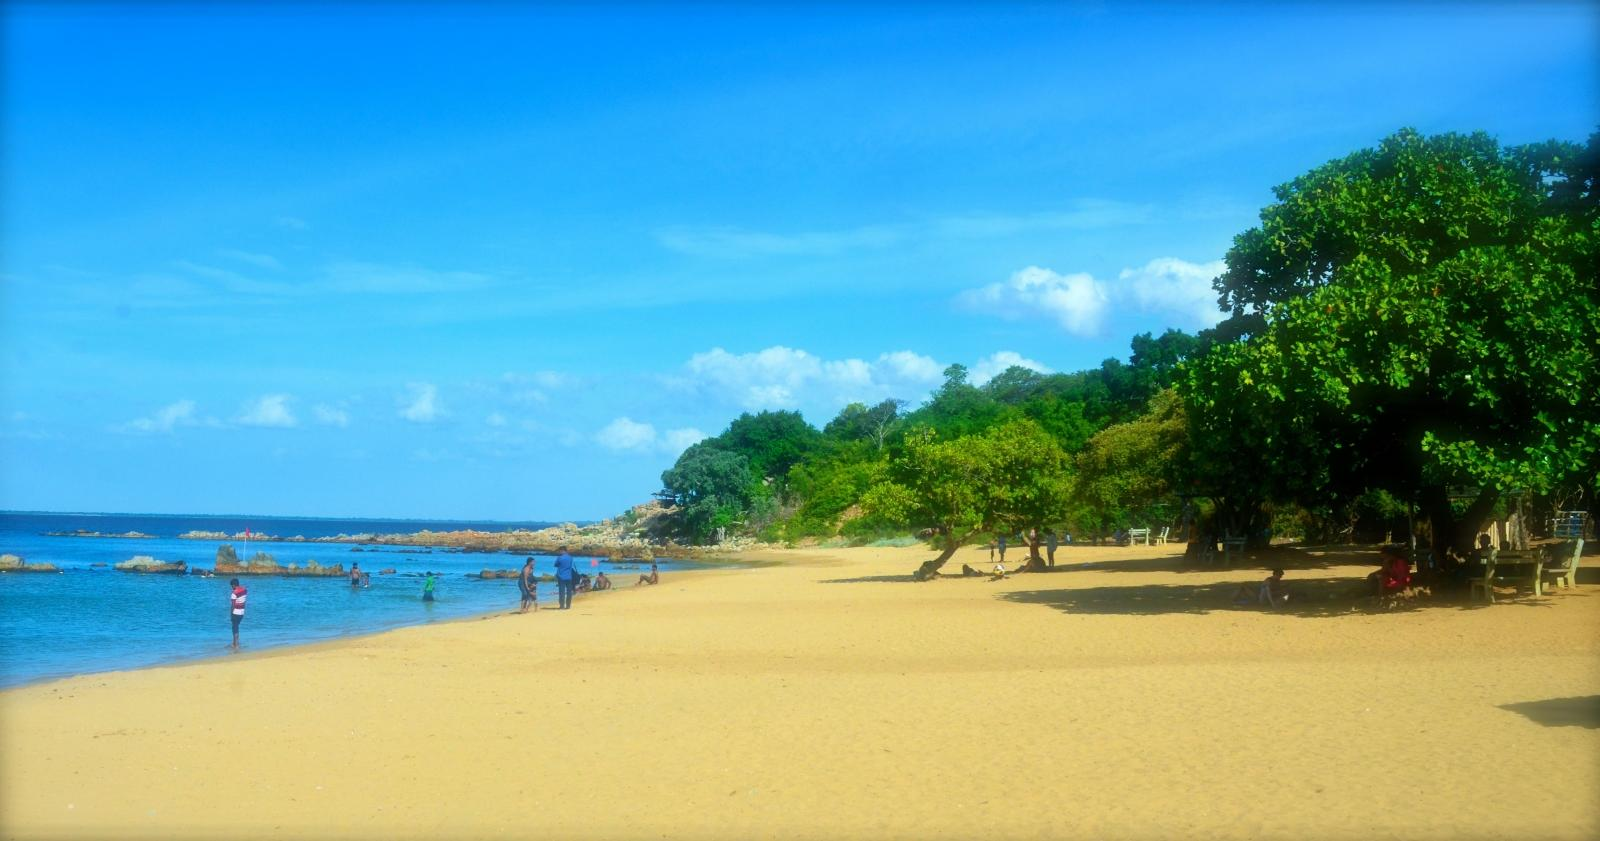 A scenic view of Marble Beach in Sri Lanka where volunteers can spend their free time